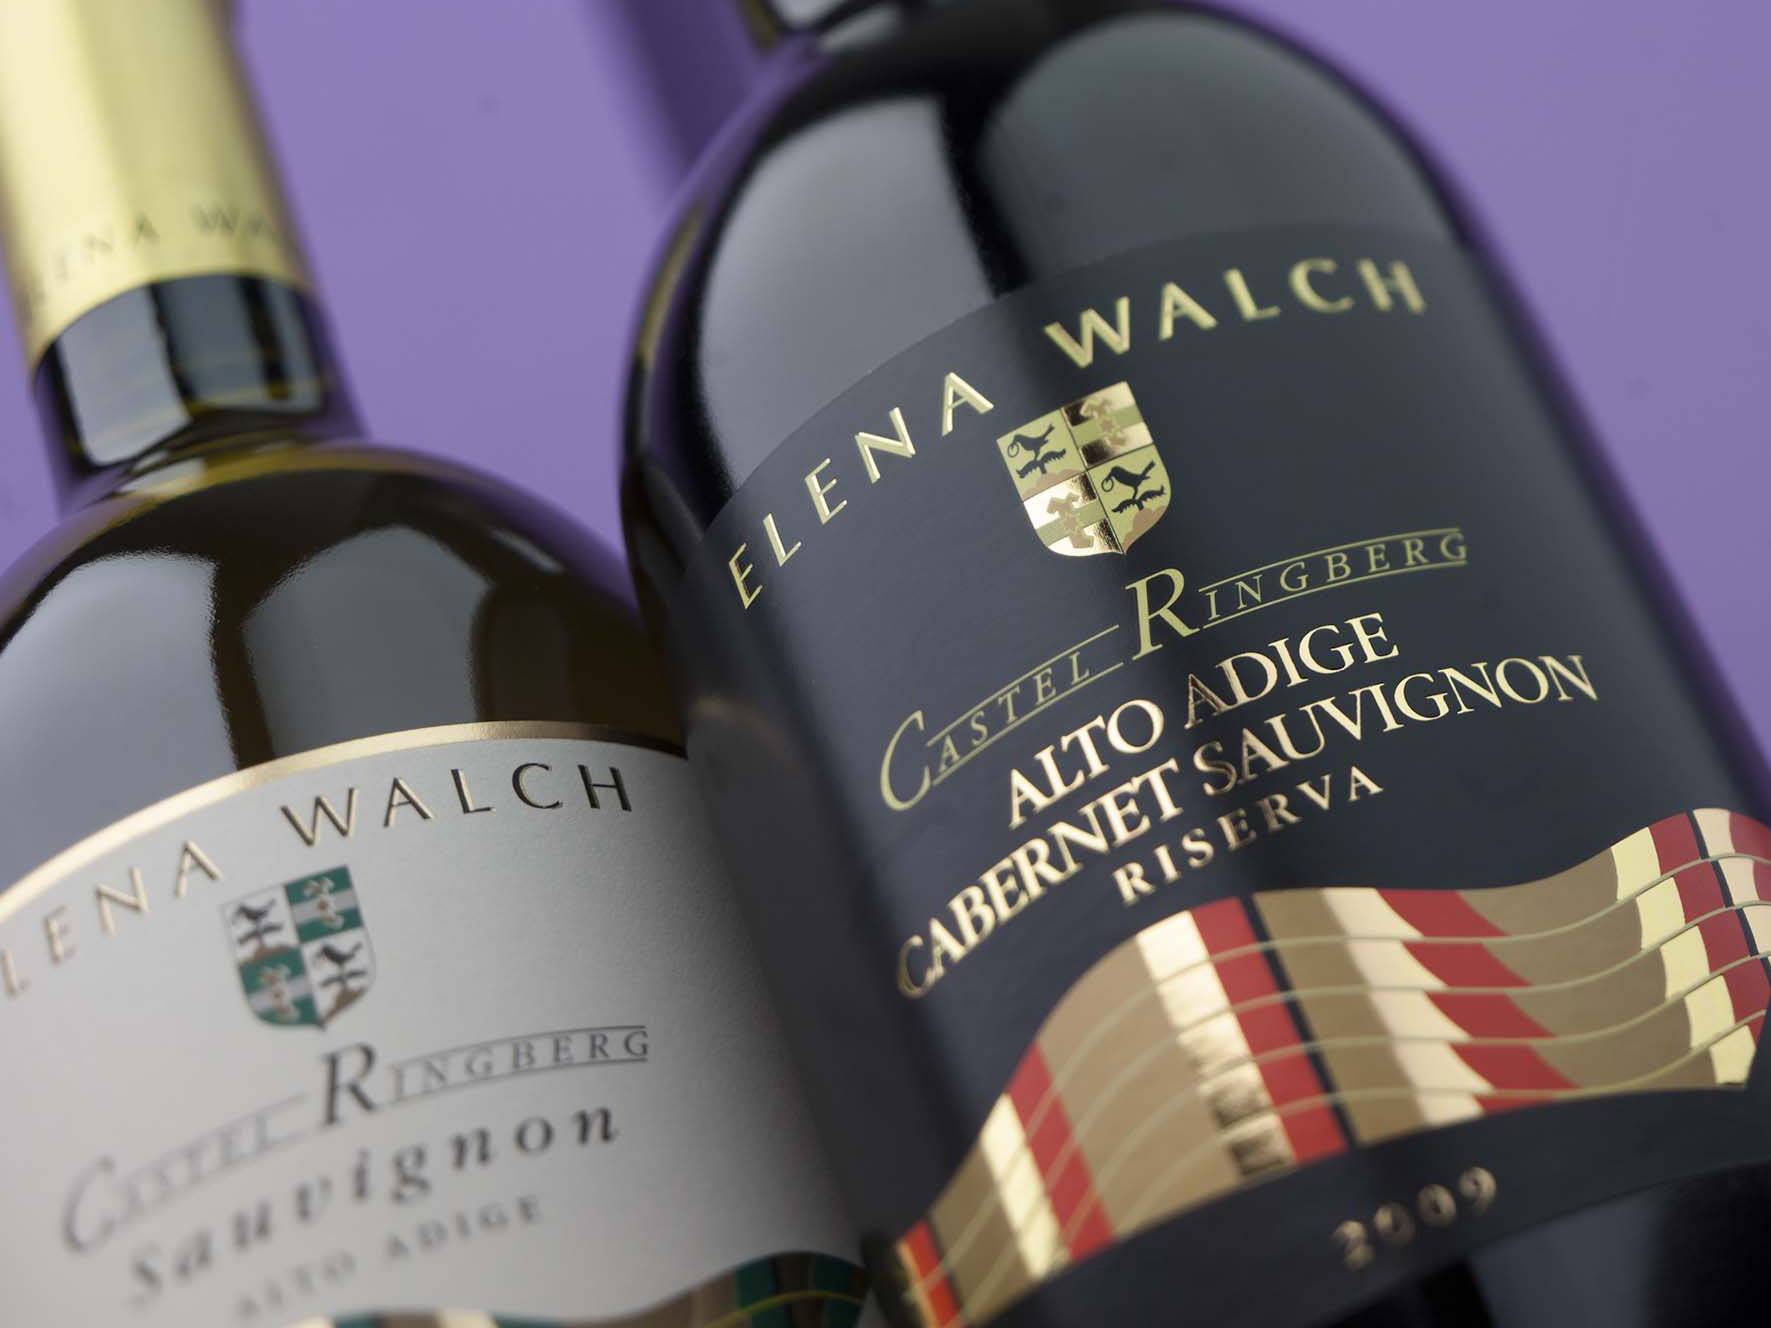 bottles of Elena Walch Sauvignon wines